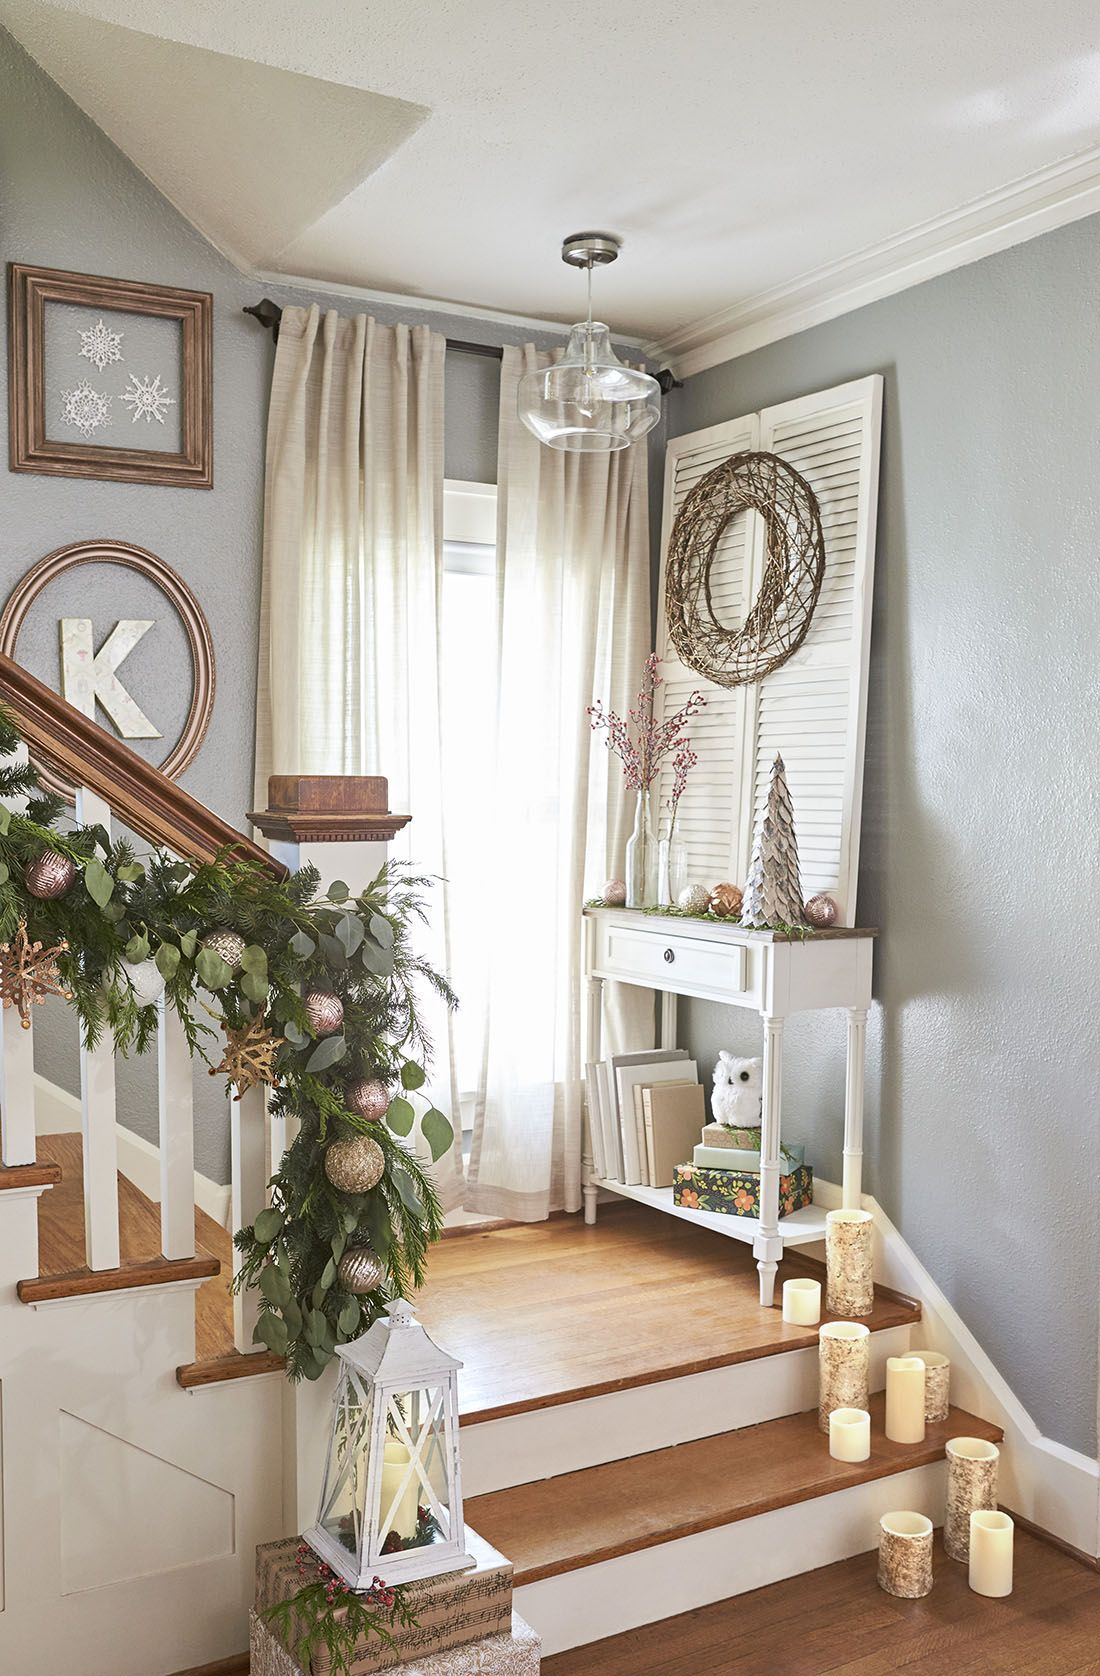 Home Staircase Ideas, Staircase Decorating Ideas | Room ...